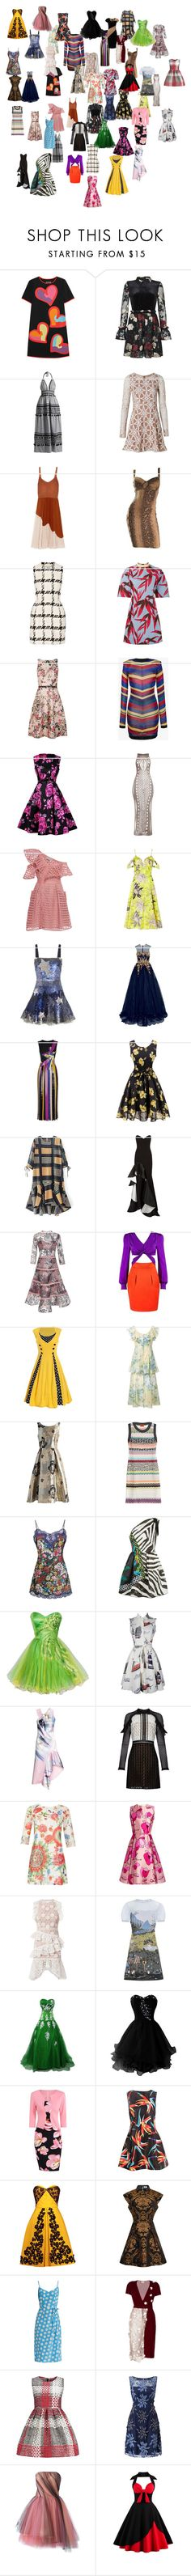 """Dresses 7"" by mysfytdesigns ❤ liked on Polyvore featuring Boutique Moschino, Ganni, For Love & Lemons, Jason Wu, Alexander McQueen, Marni, Ted Baker, Balmain, self-portrait and Topshop"